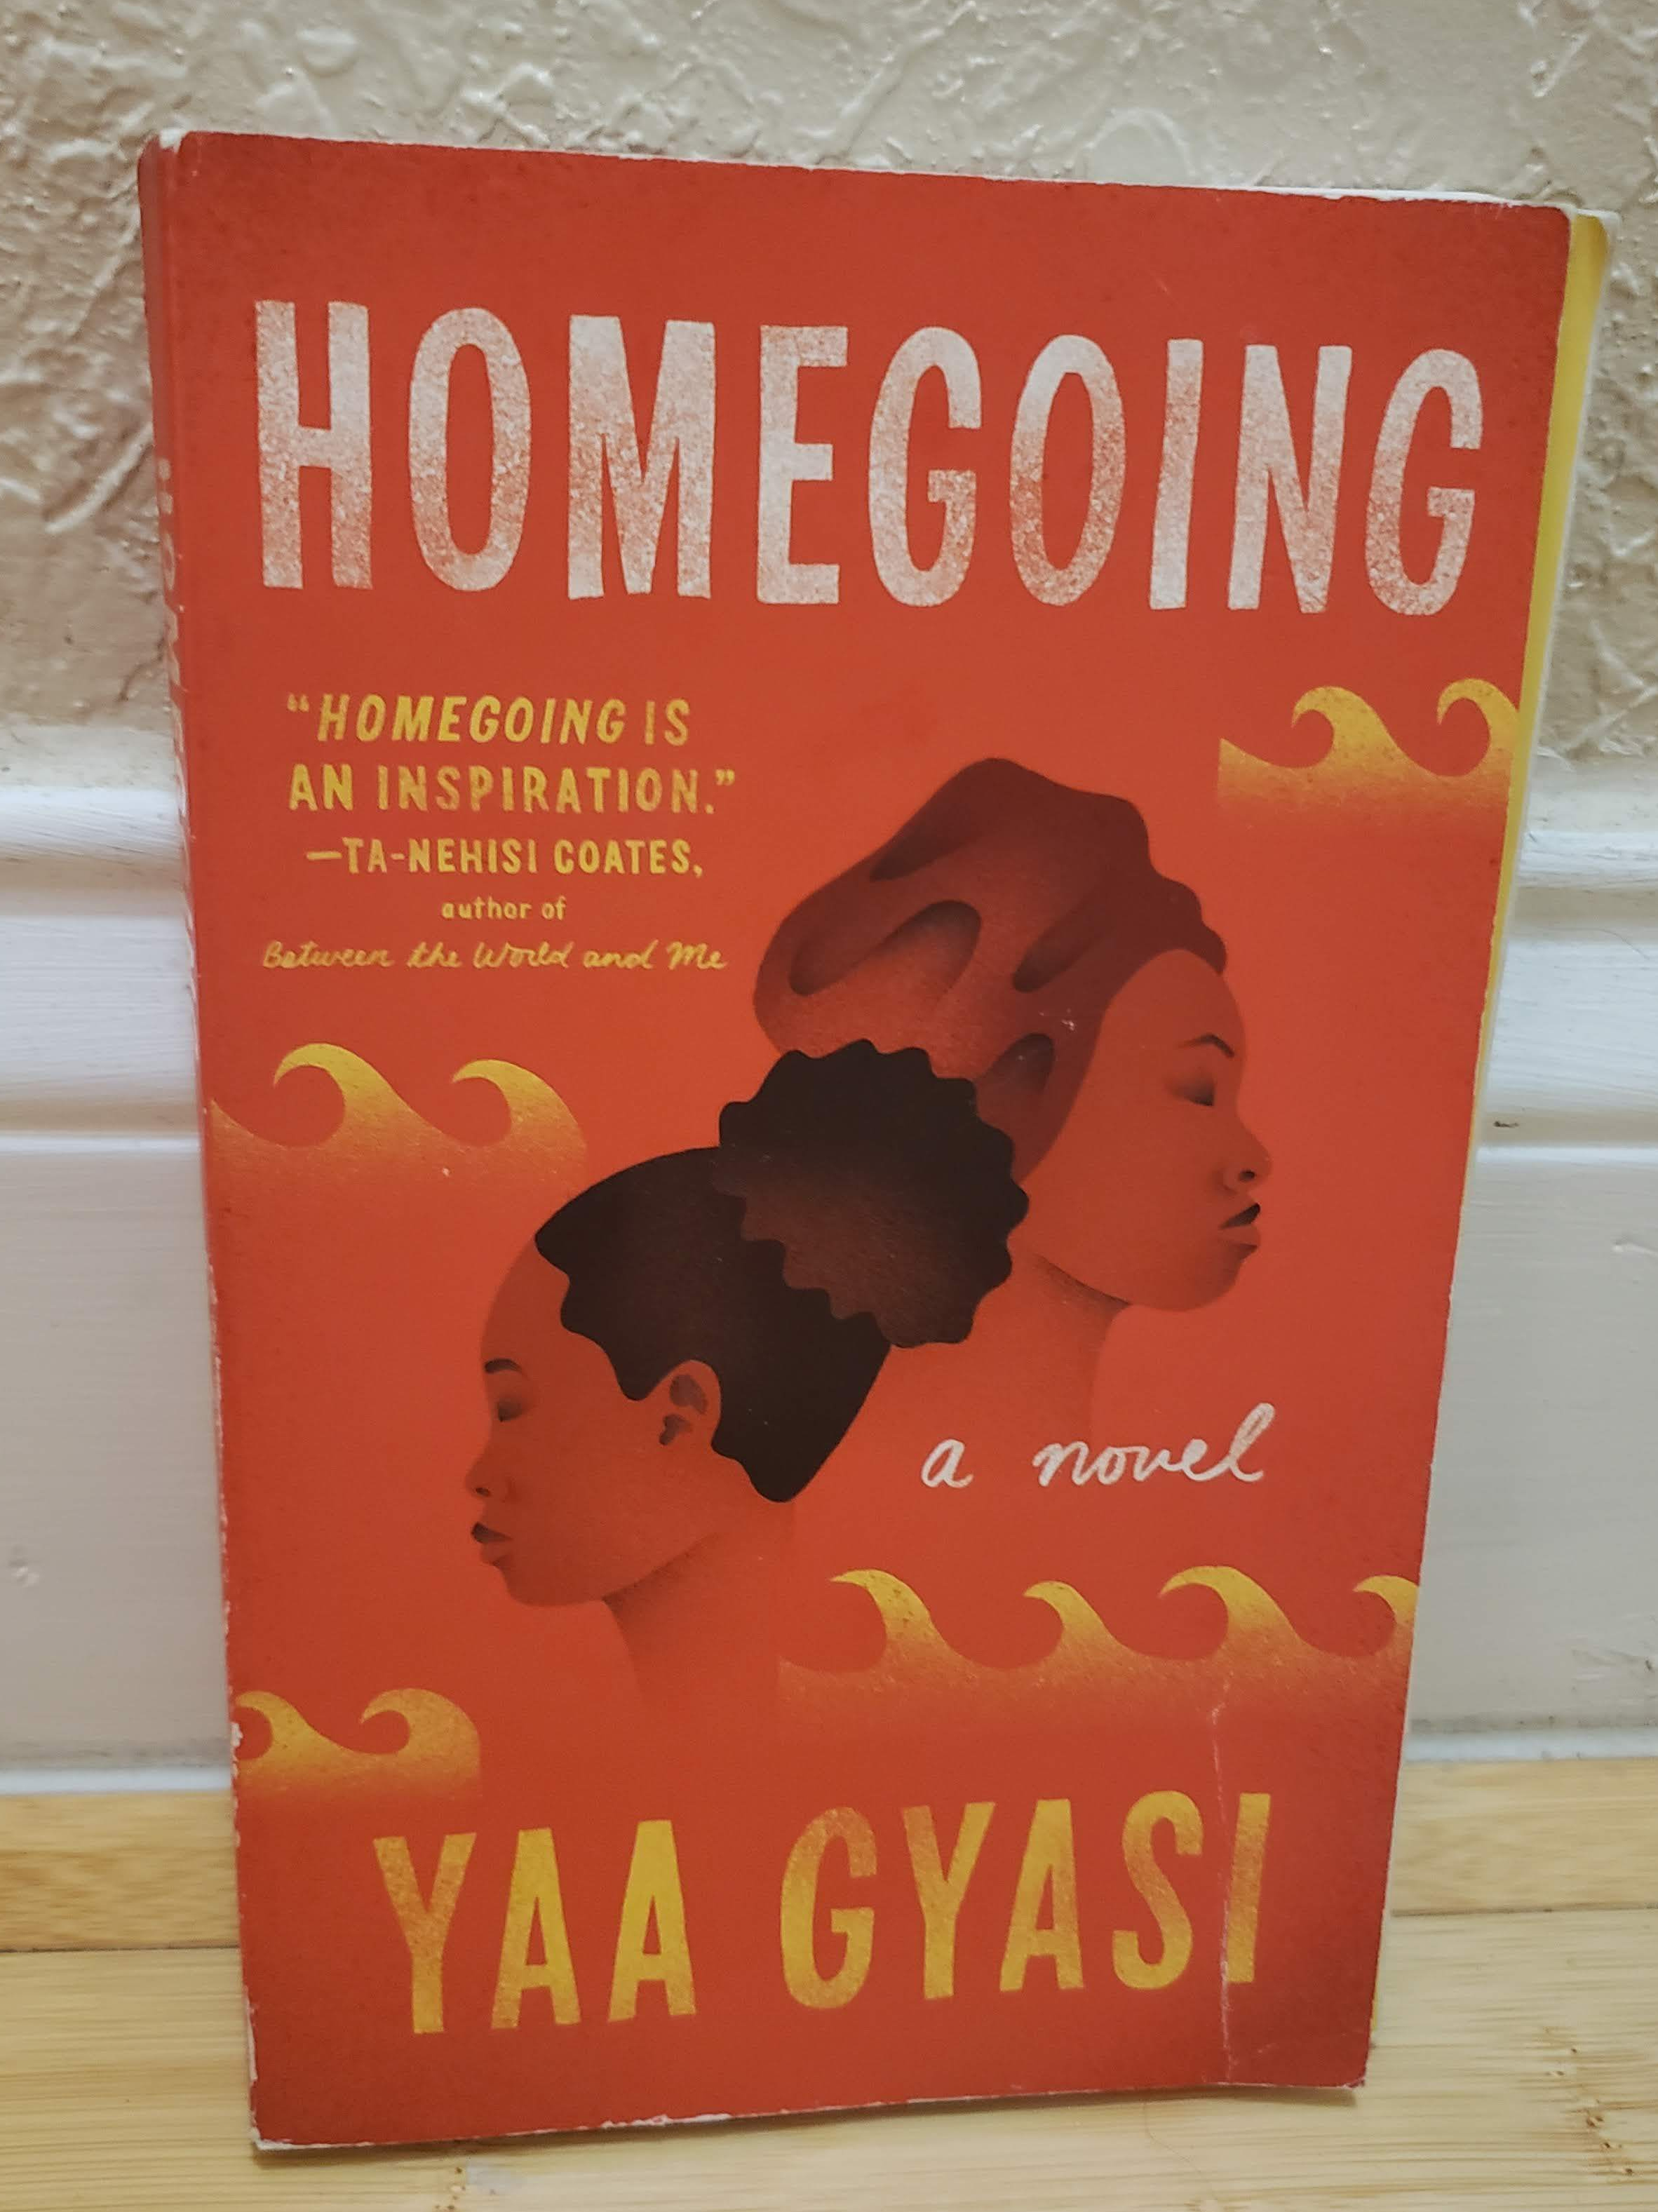 If you don't take my word for it, Orprah also called Homegoing by Yaa Gyasi one of the best books of the year.